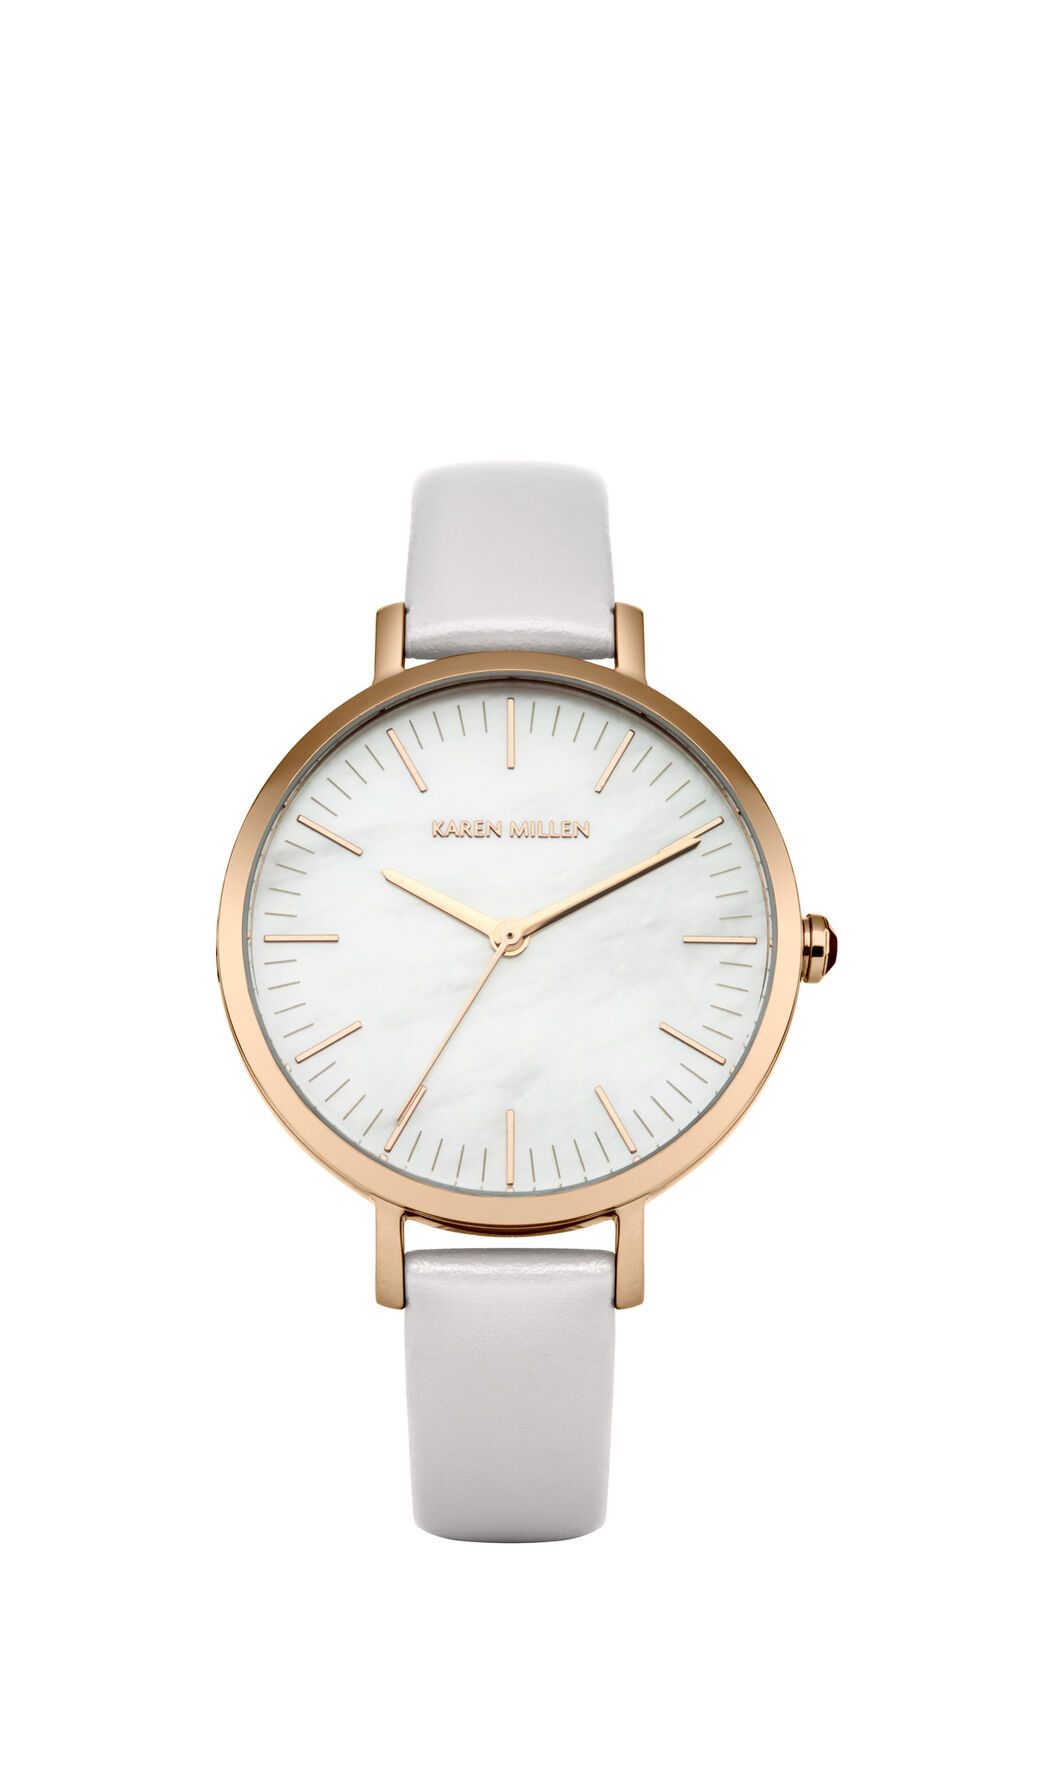 Karen Millen, MOTHER OF PEARL AND LEATHER WA Nude 0